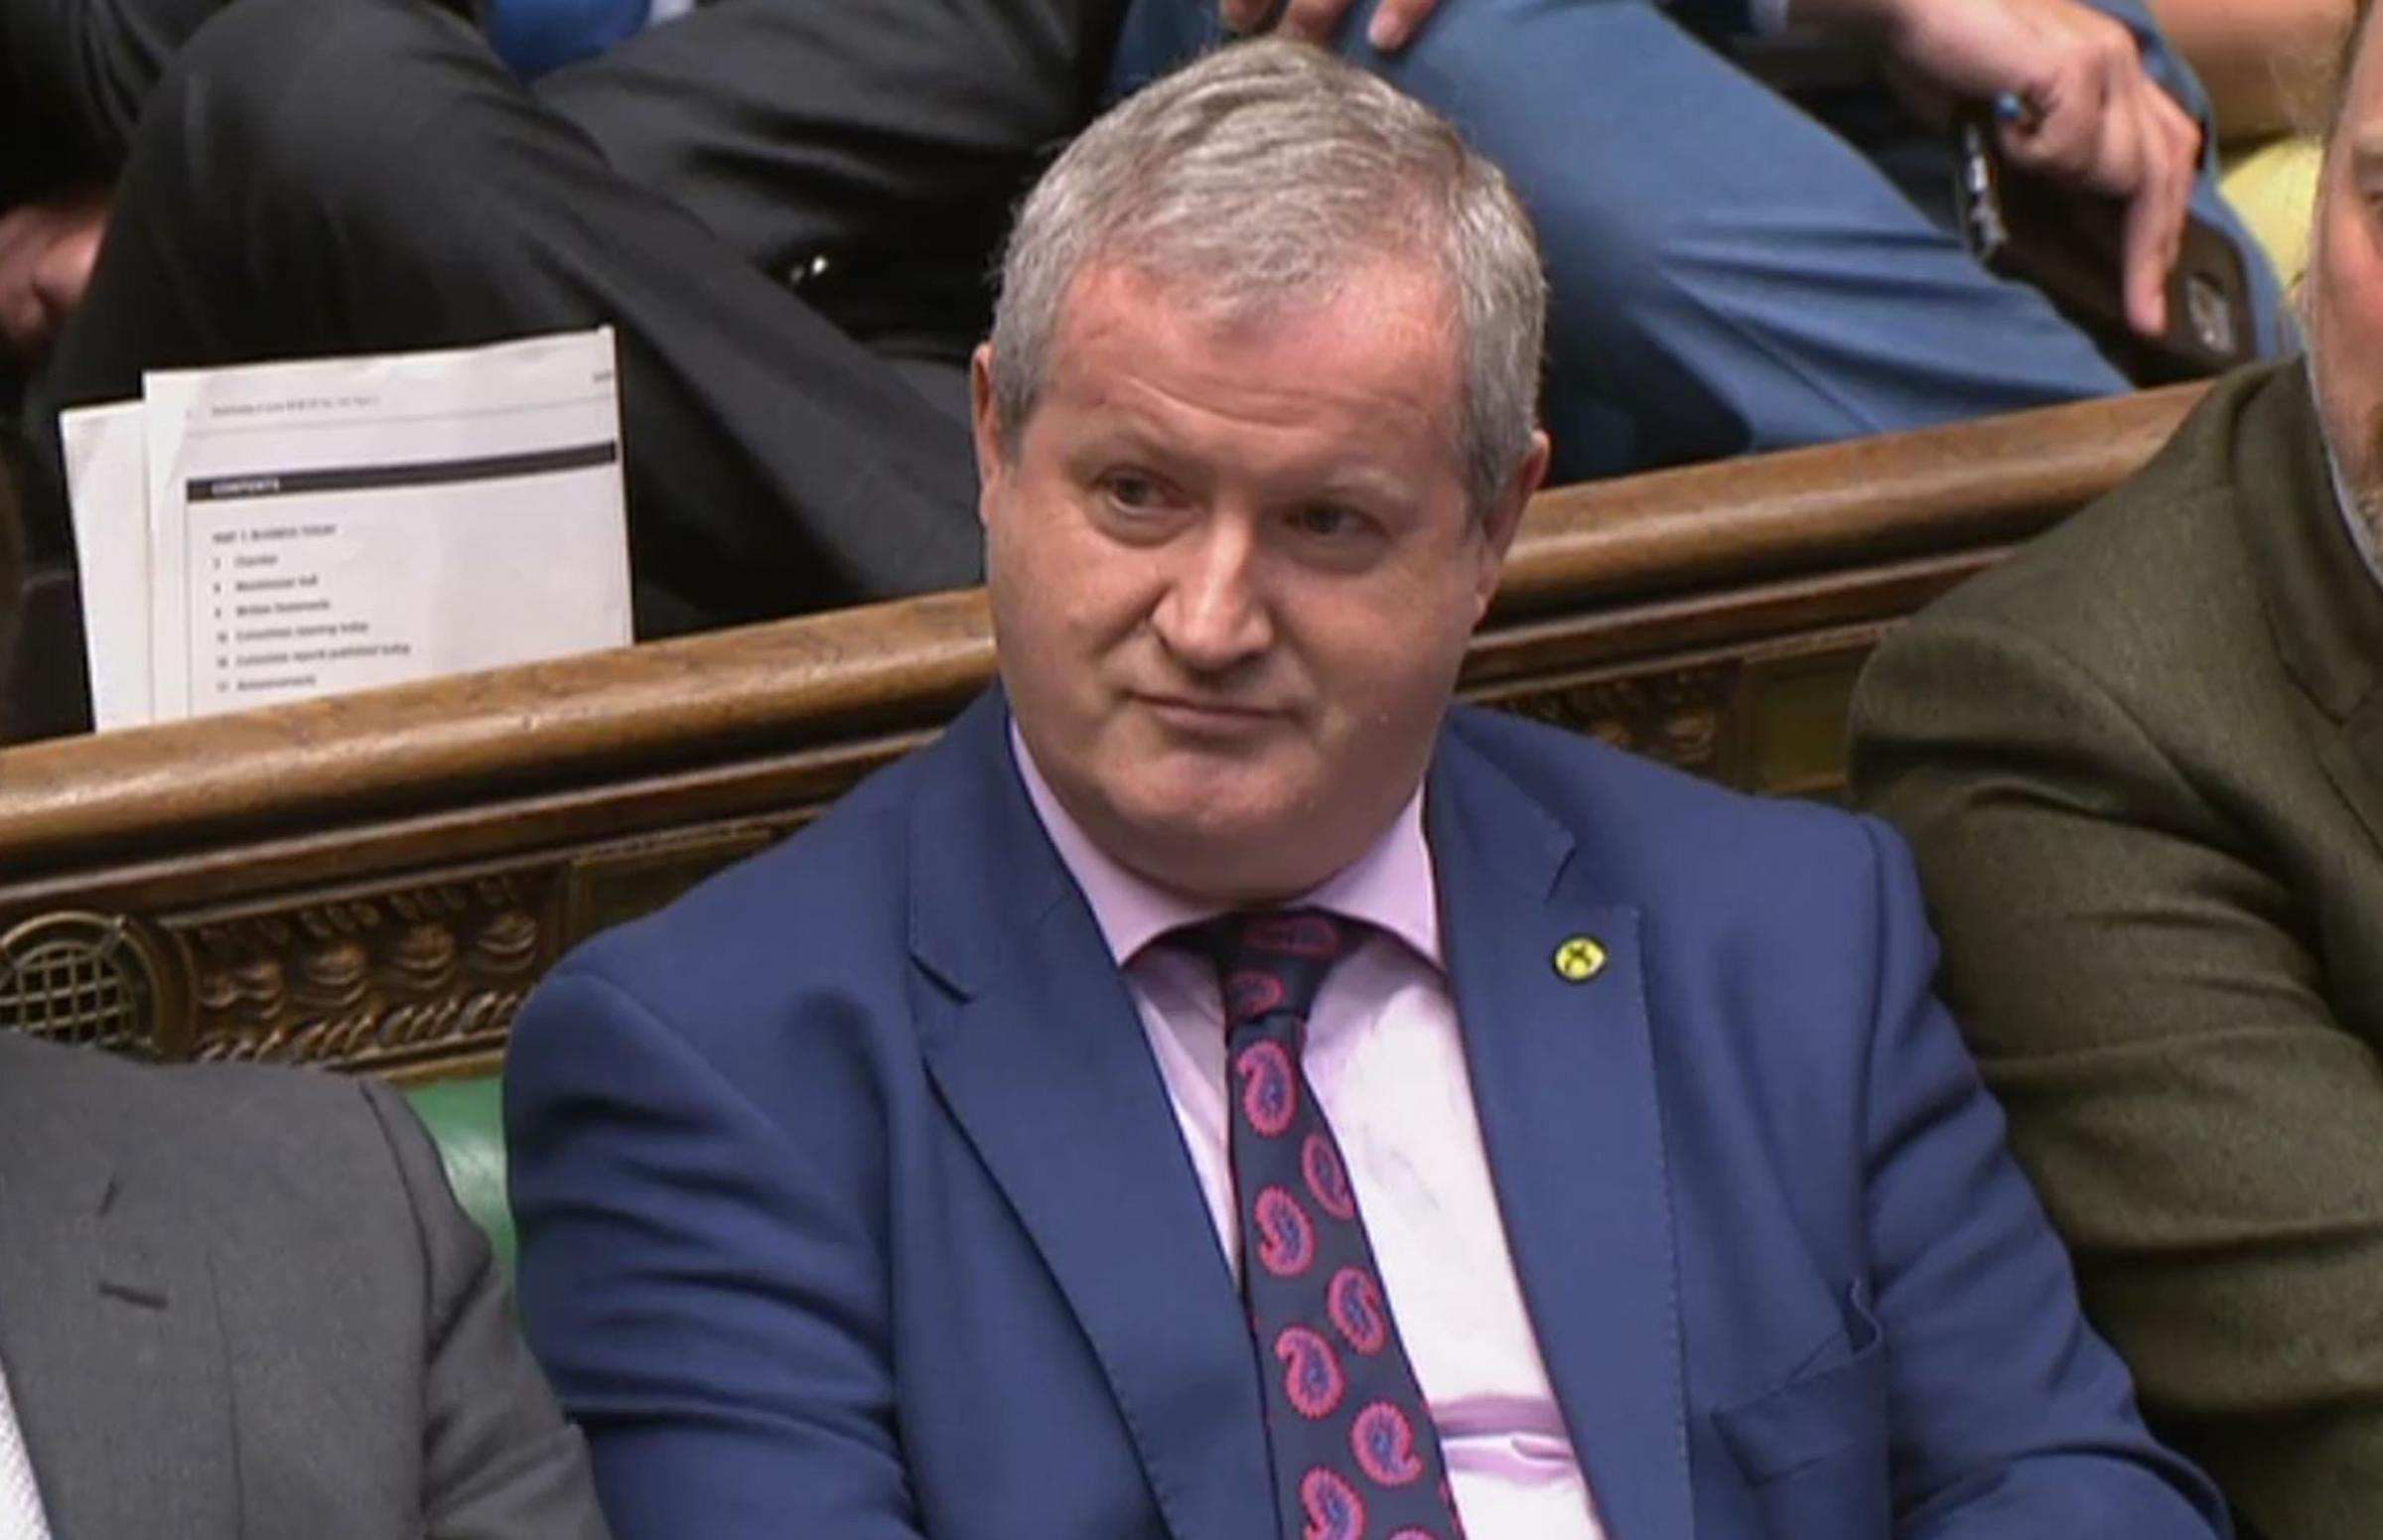 SNP Westminster leader Ian Blackford was expelled from the House of Commons